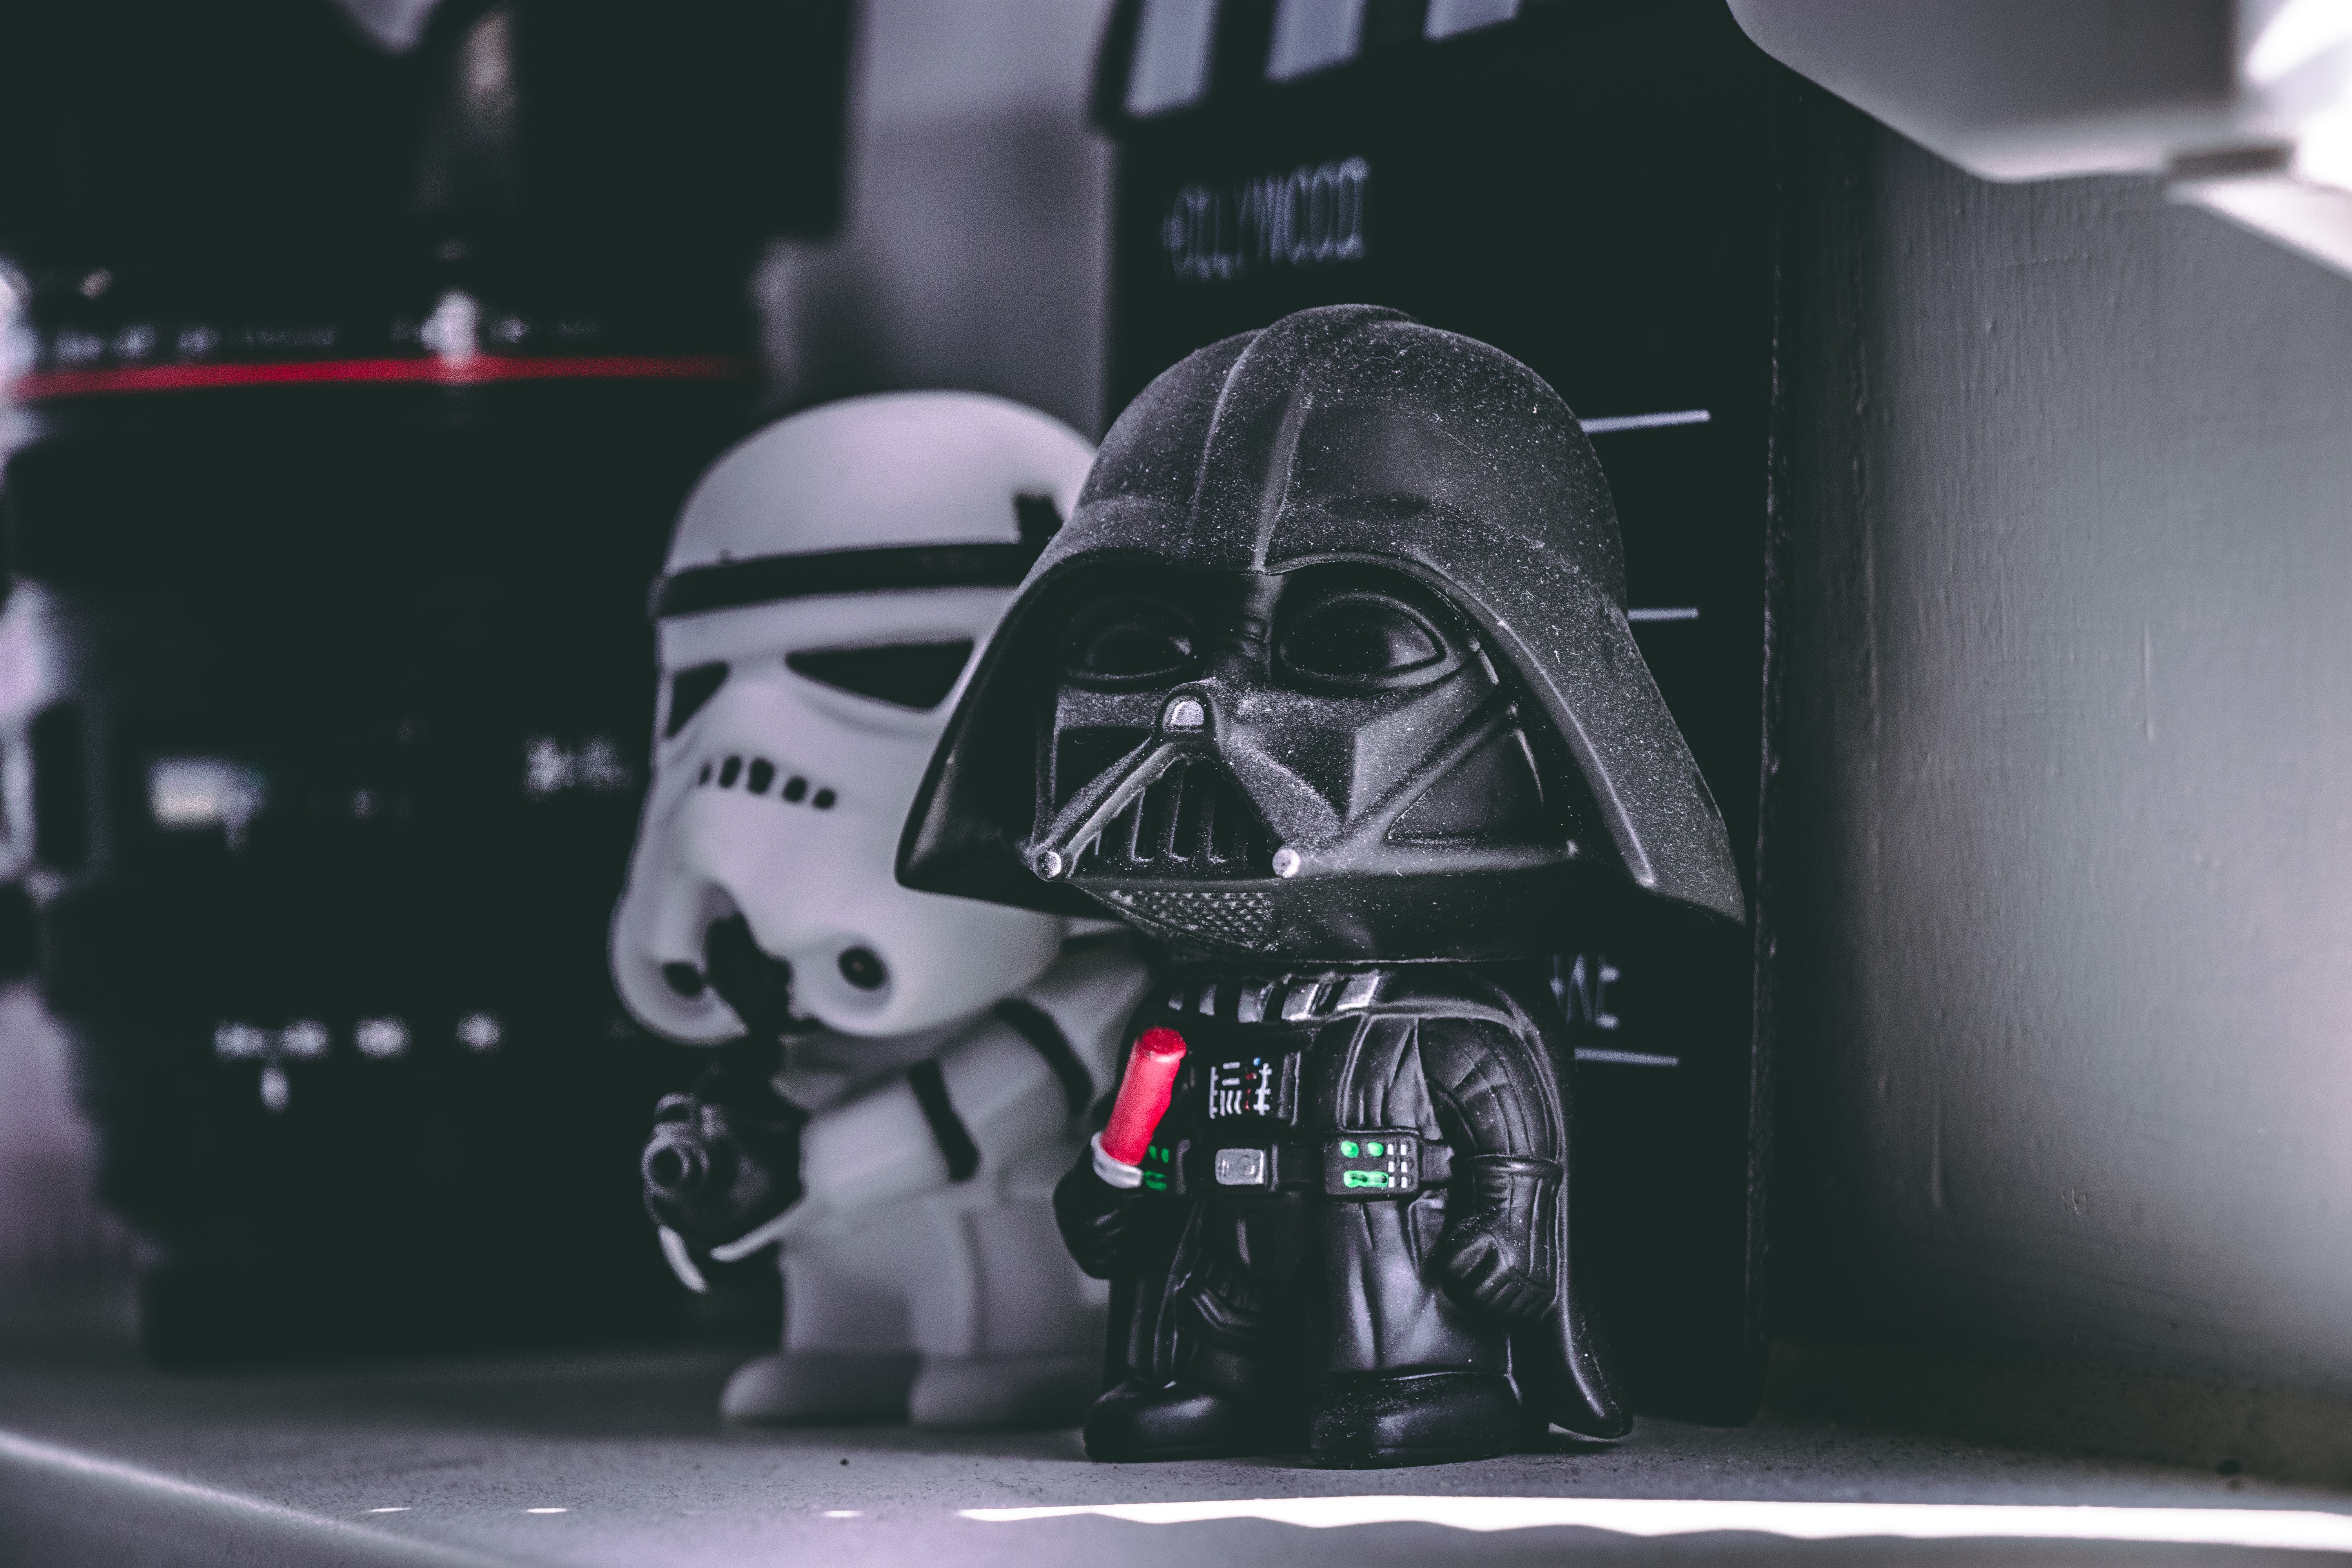 Star Wars Darth Vader and Storm Trooper figurine